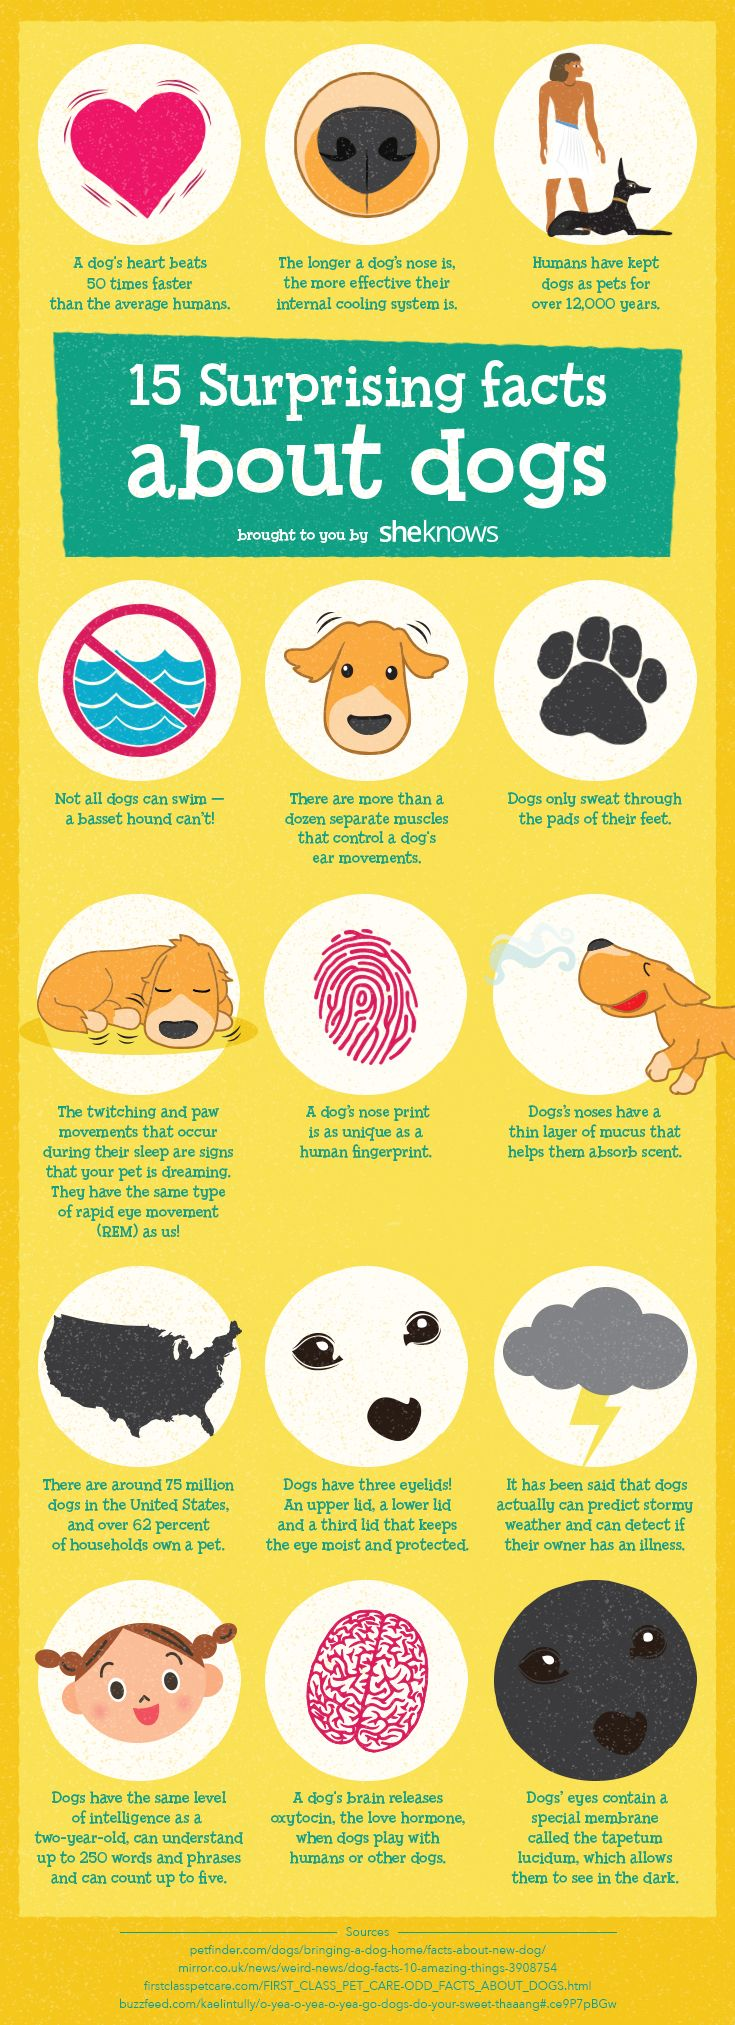 Amazing dog facts that will make you love your pup even more